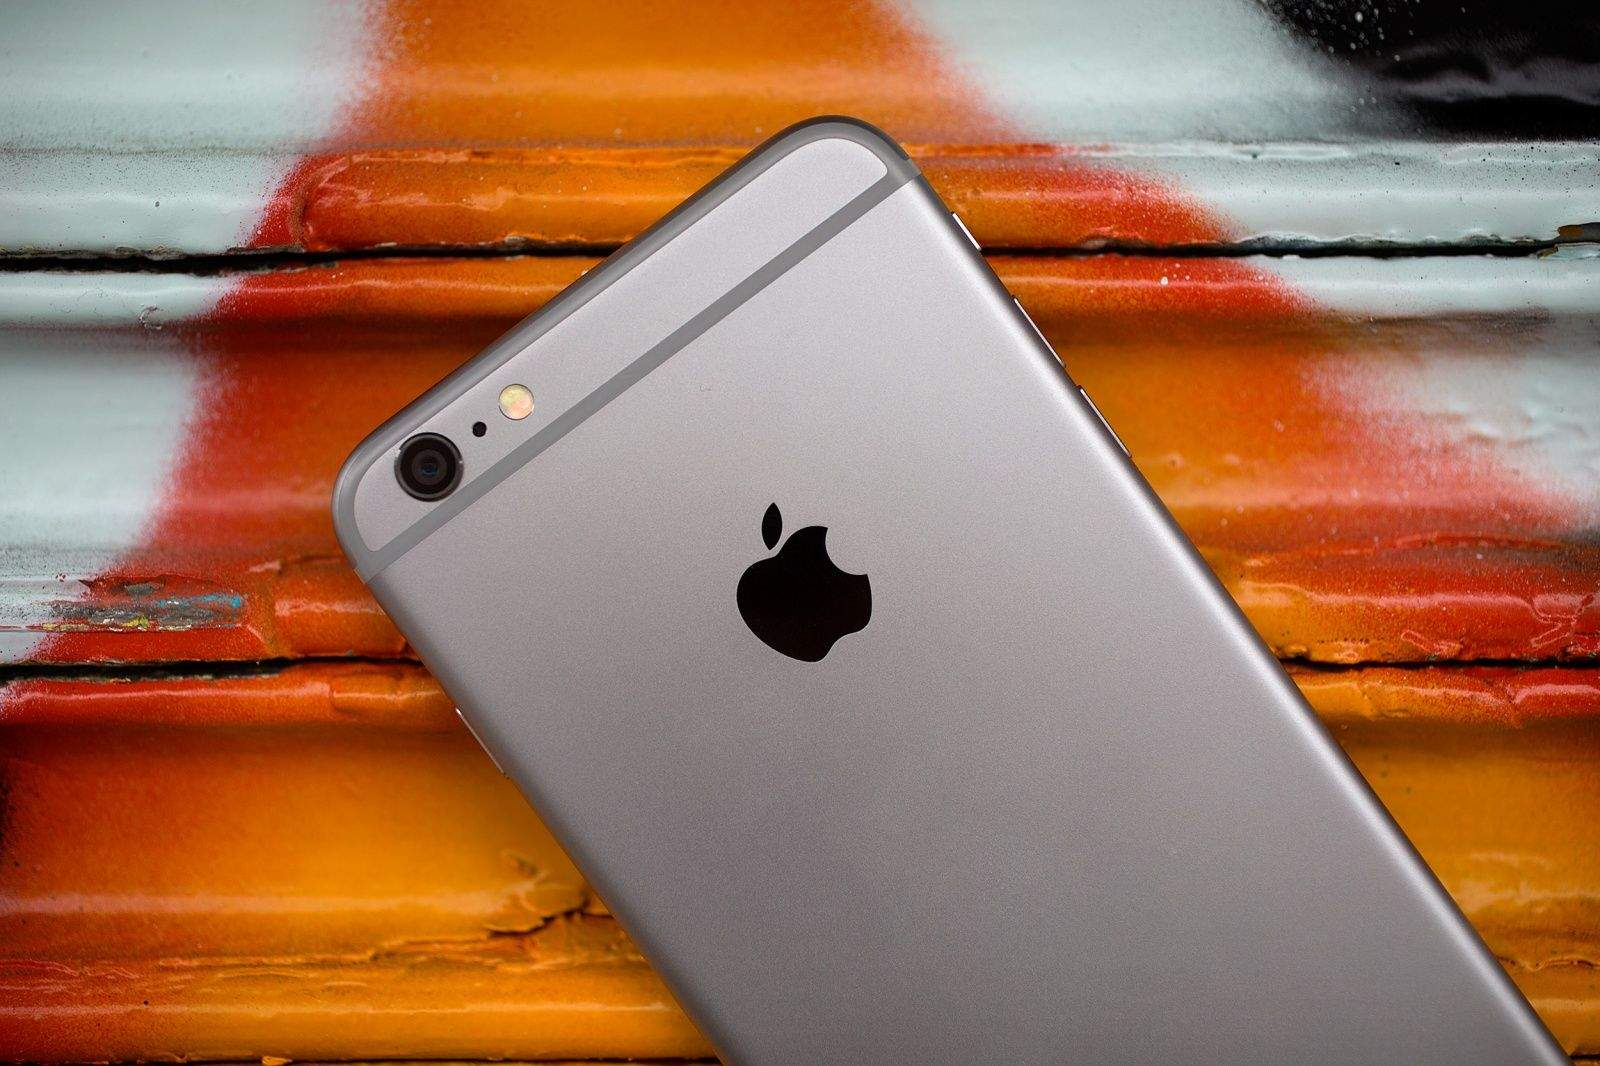 Man Who Sold Kidney for an iPhone Suffers Organ Failure